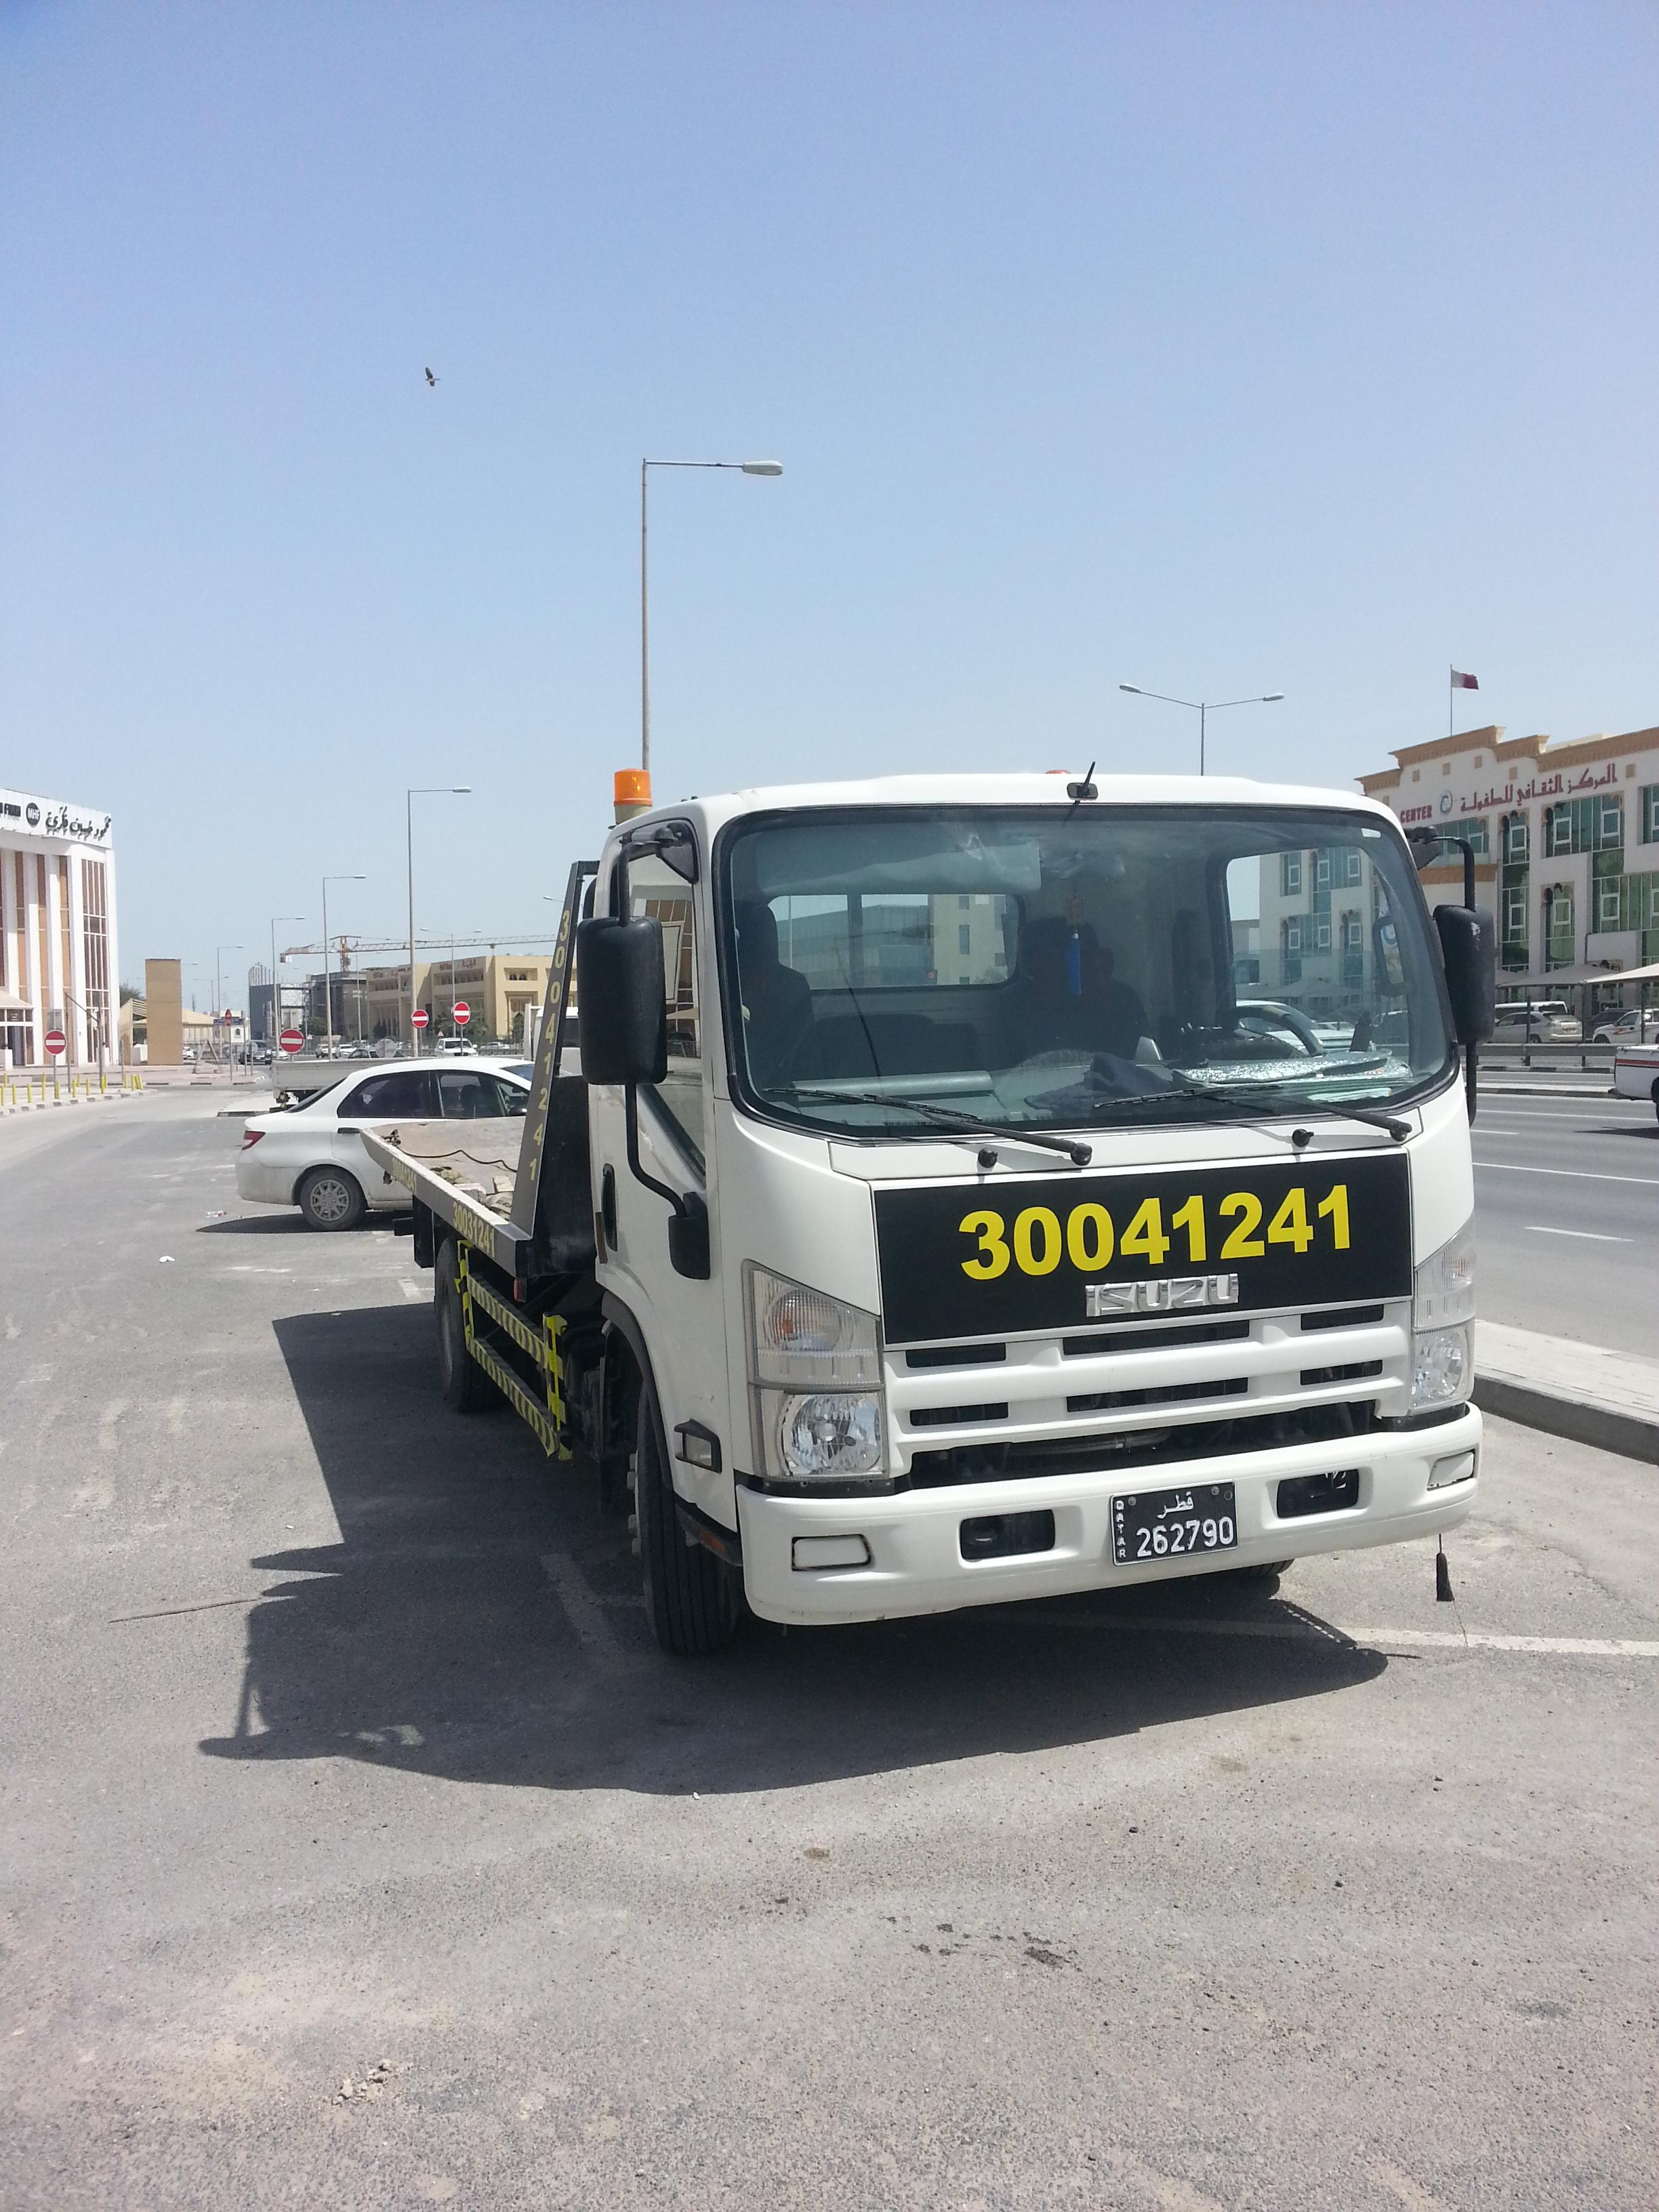 Car Towing and Roadside Assistance call 50001241